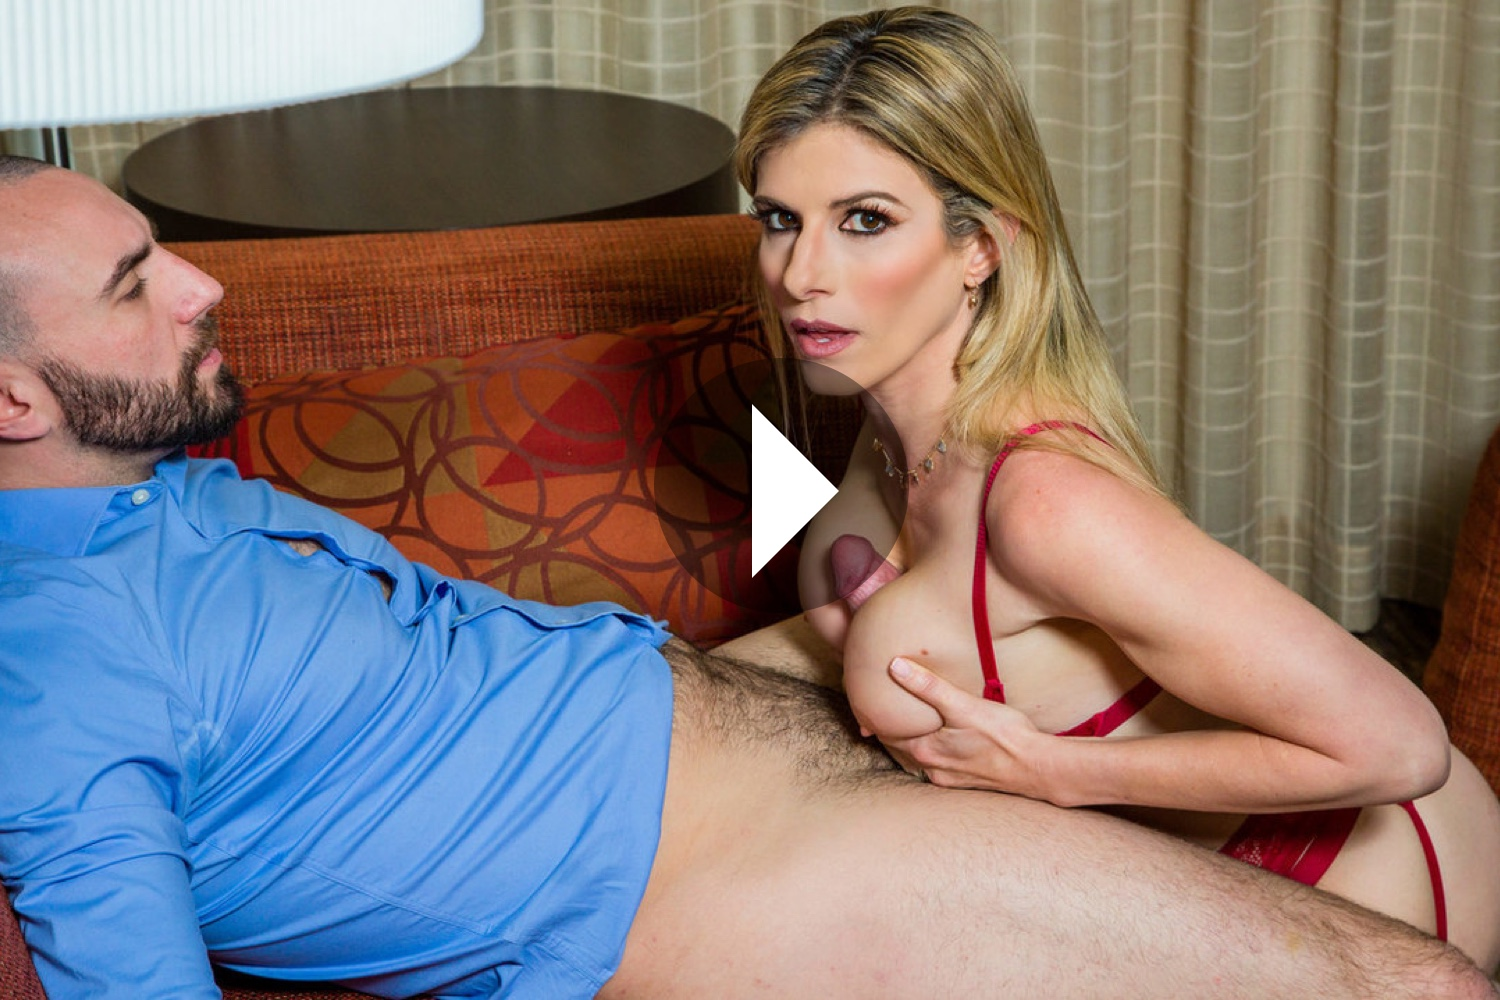 Cory Chase Wearing Stockings Fucks Her Biggest Fan - Cory Chase Legs - Cory Chase Feet